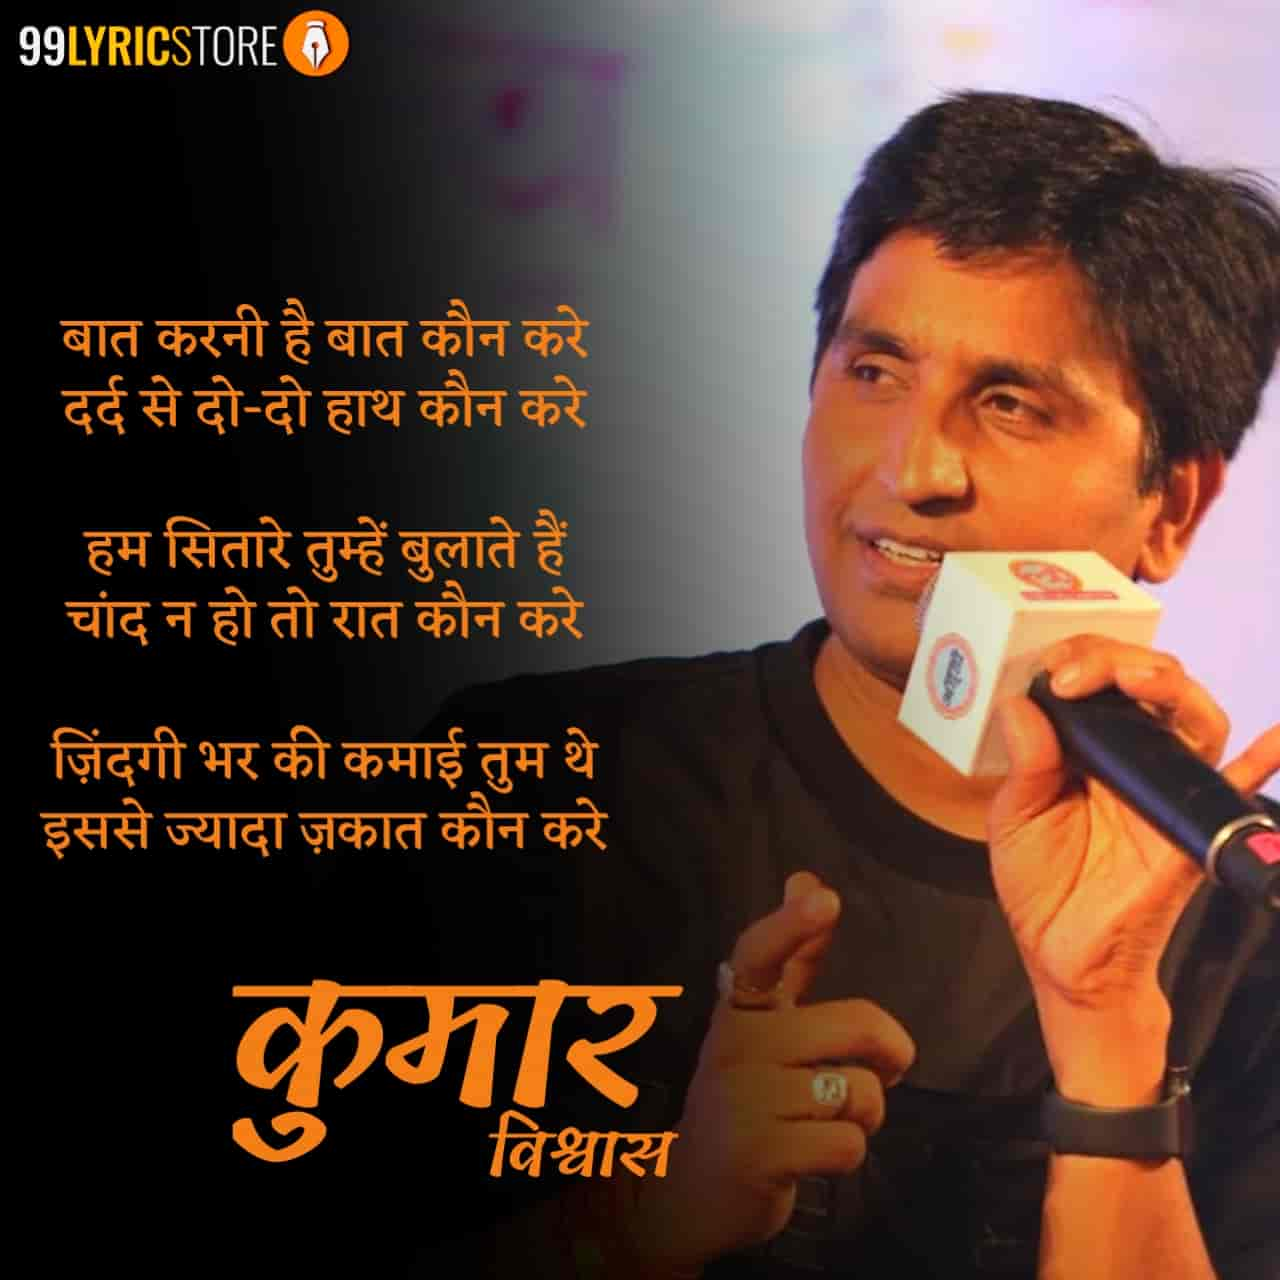 This Beautiful Hindi Poem 'Baat Karni Hai Baat Kaun Kare' which is written and presented by Young kavi Kumar Vishwas in Kashi while to talking with media reporter in boat.